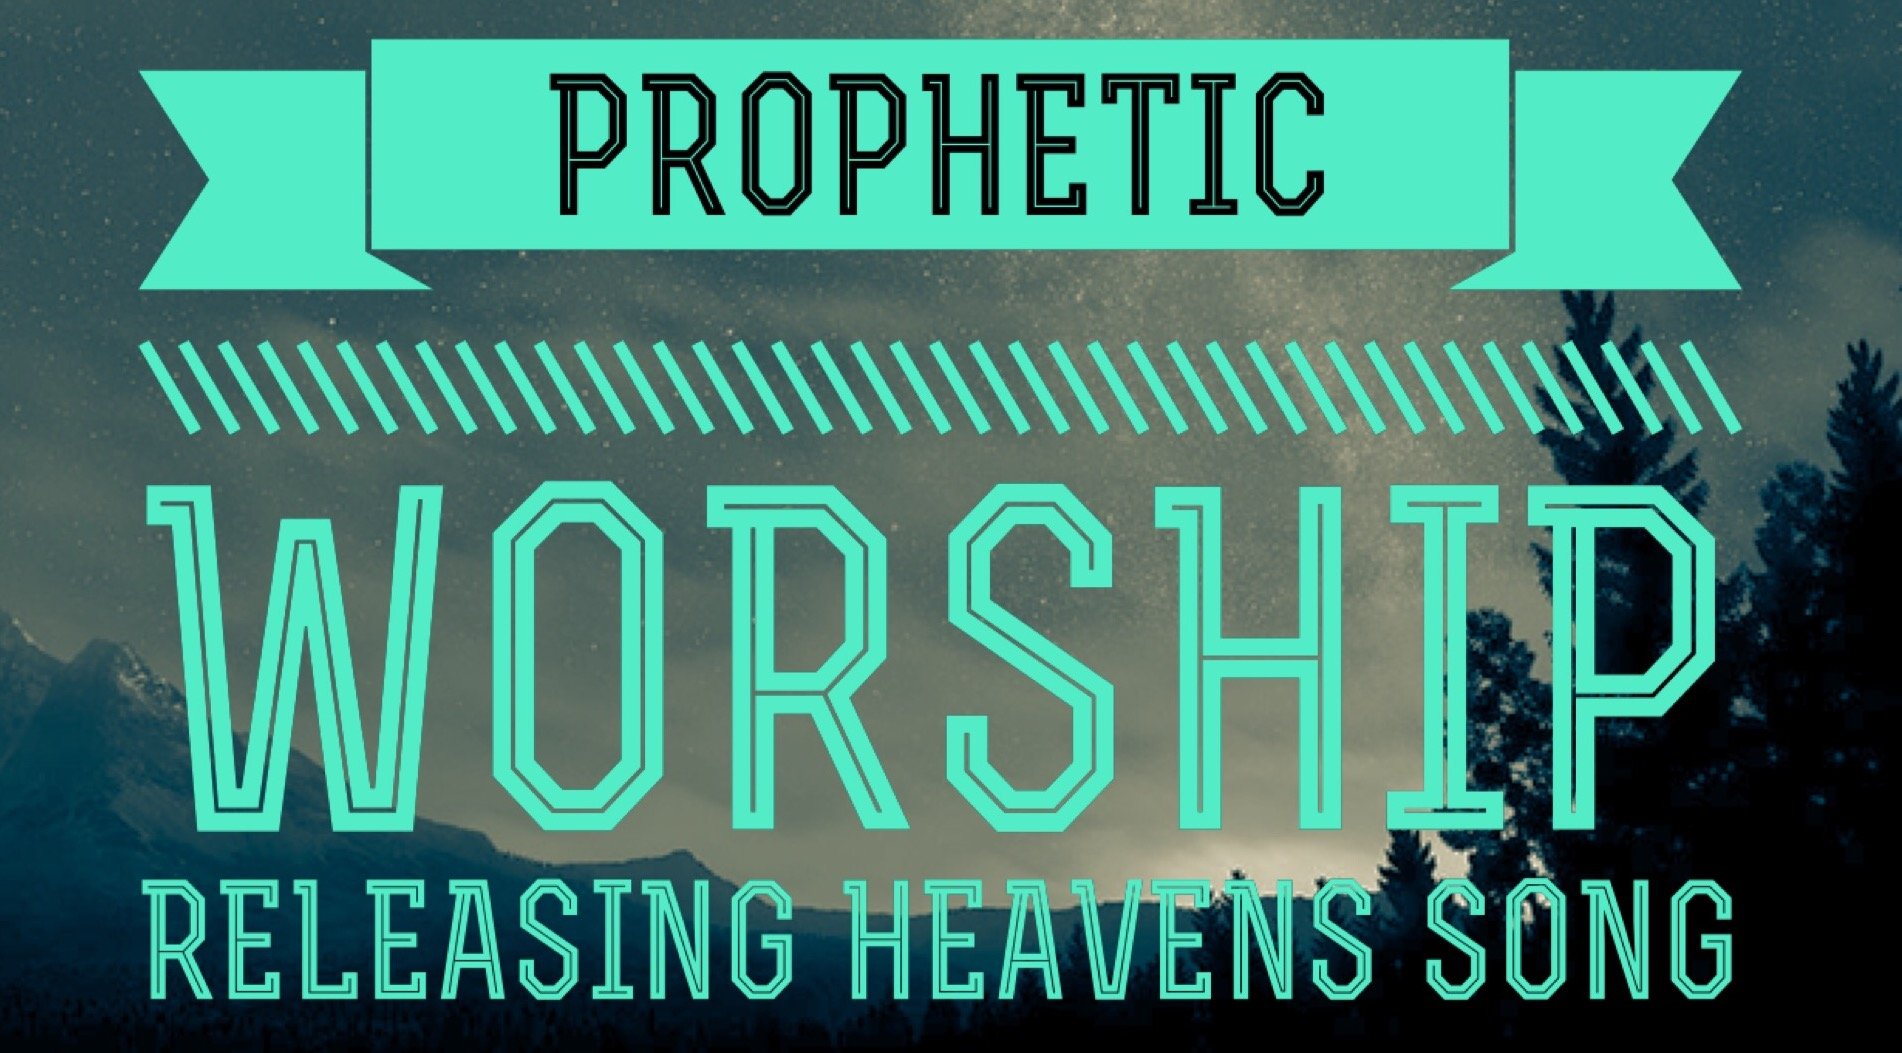 Prophetic Worship - Releasing Heavens Song: Singing Over Your Nation For Breakthrough And Revival